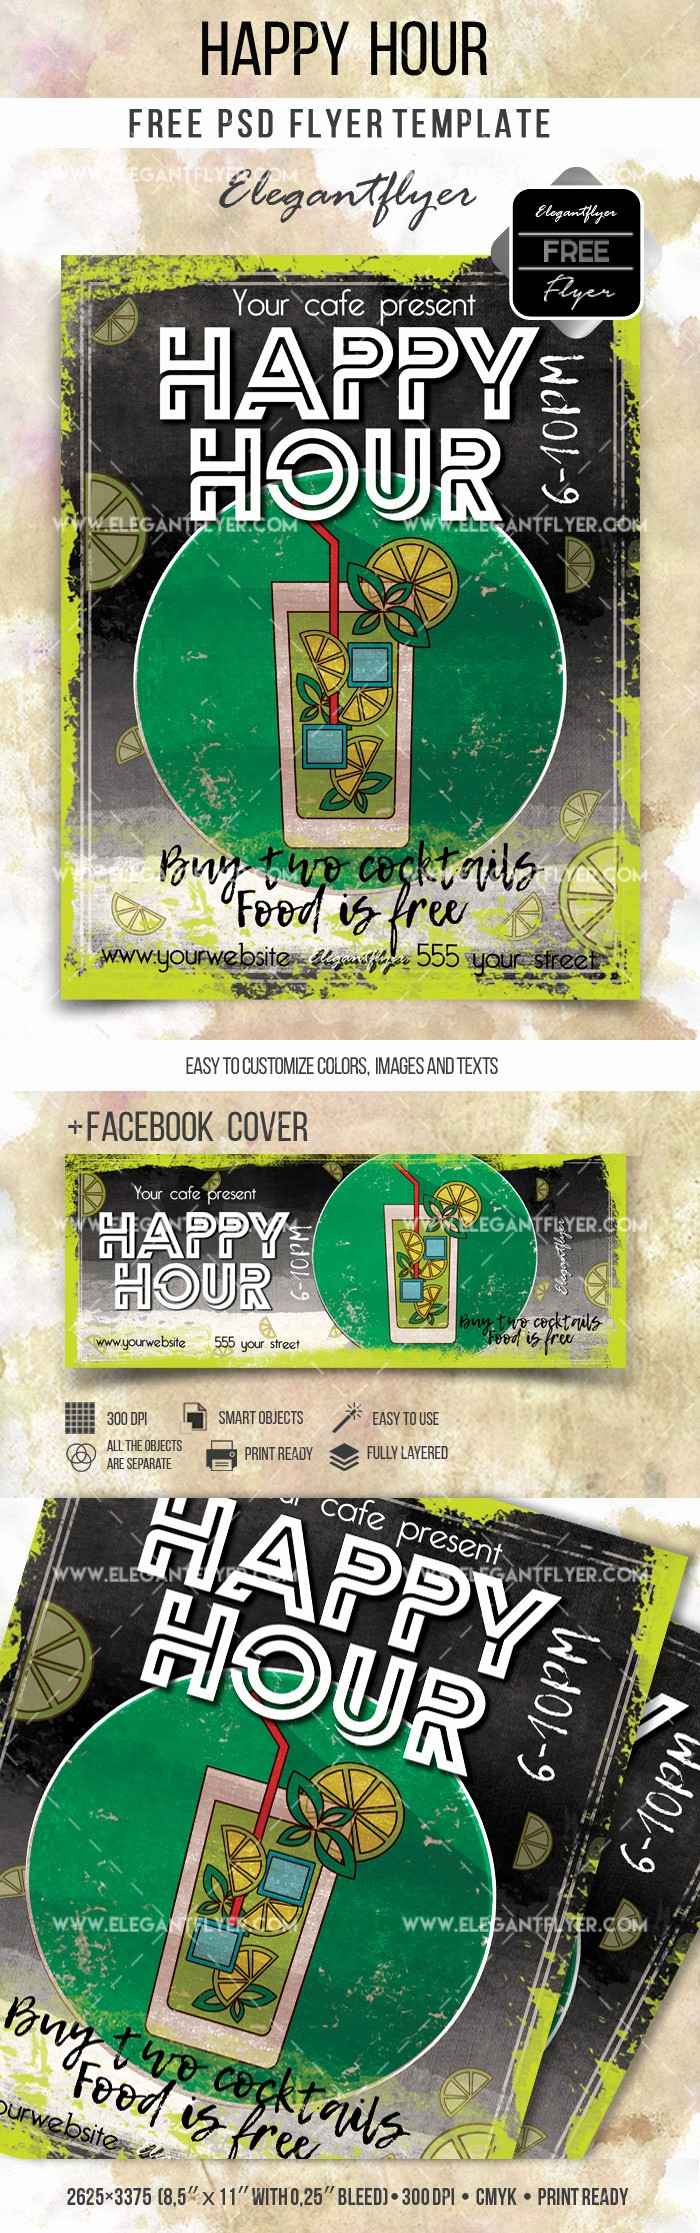 Happy Hour Flyer Template Free Best Of Happy Hour Flyer Free Psd Template – by Elegantflyer